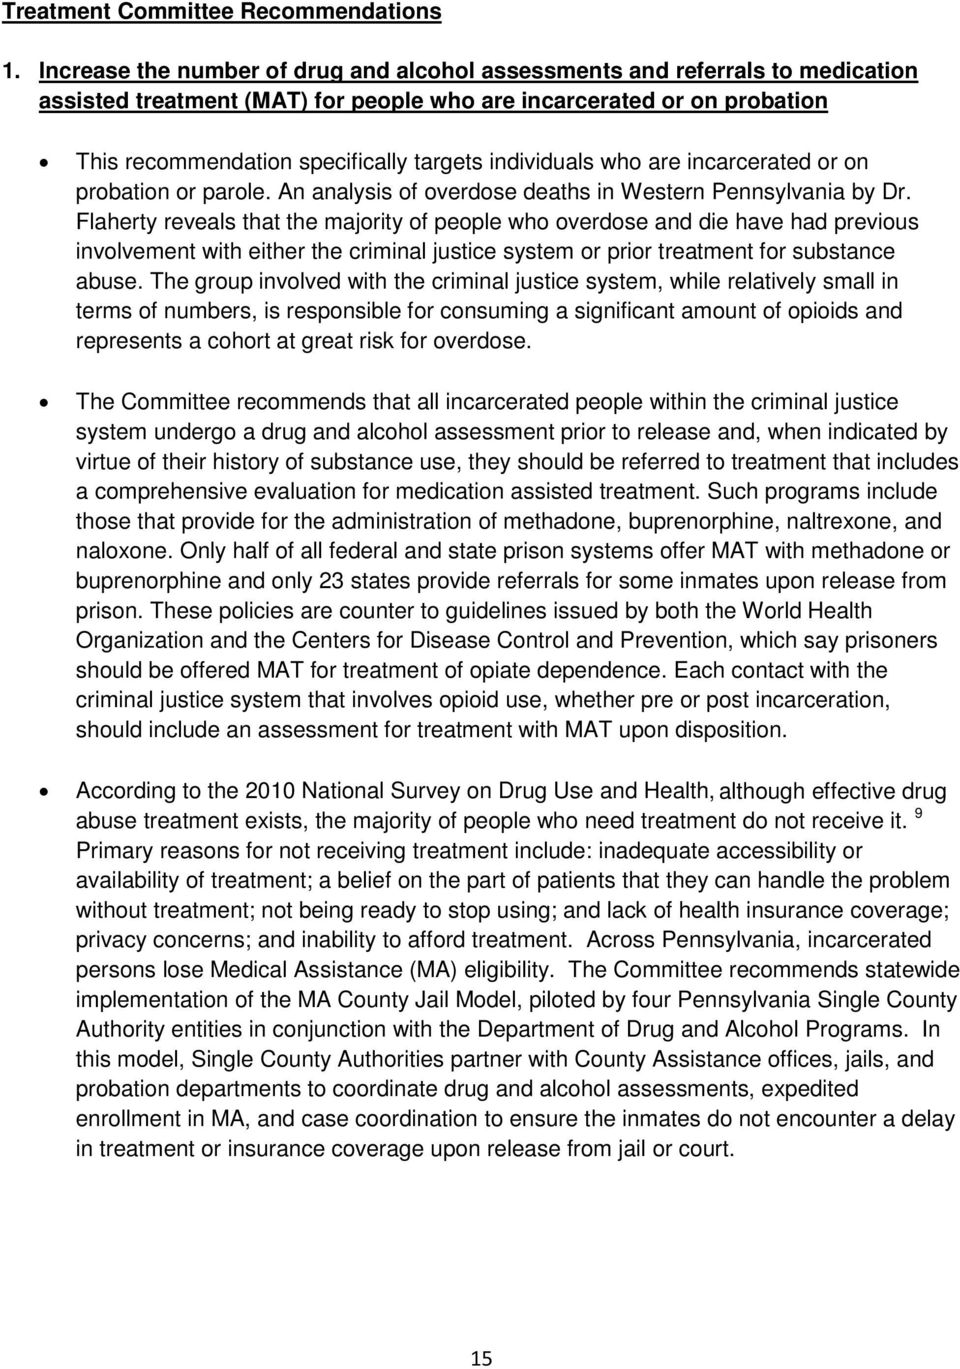 individuals who are incarcerated or on probation or parole. An analysis of overdose deaths in Western Pennsylvania by Dr.